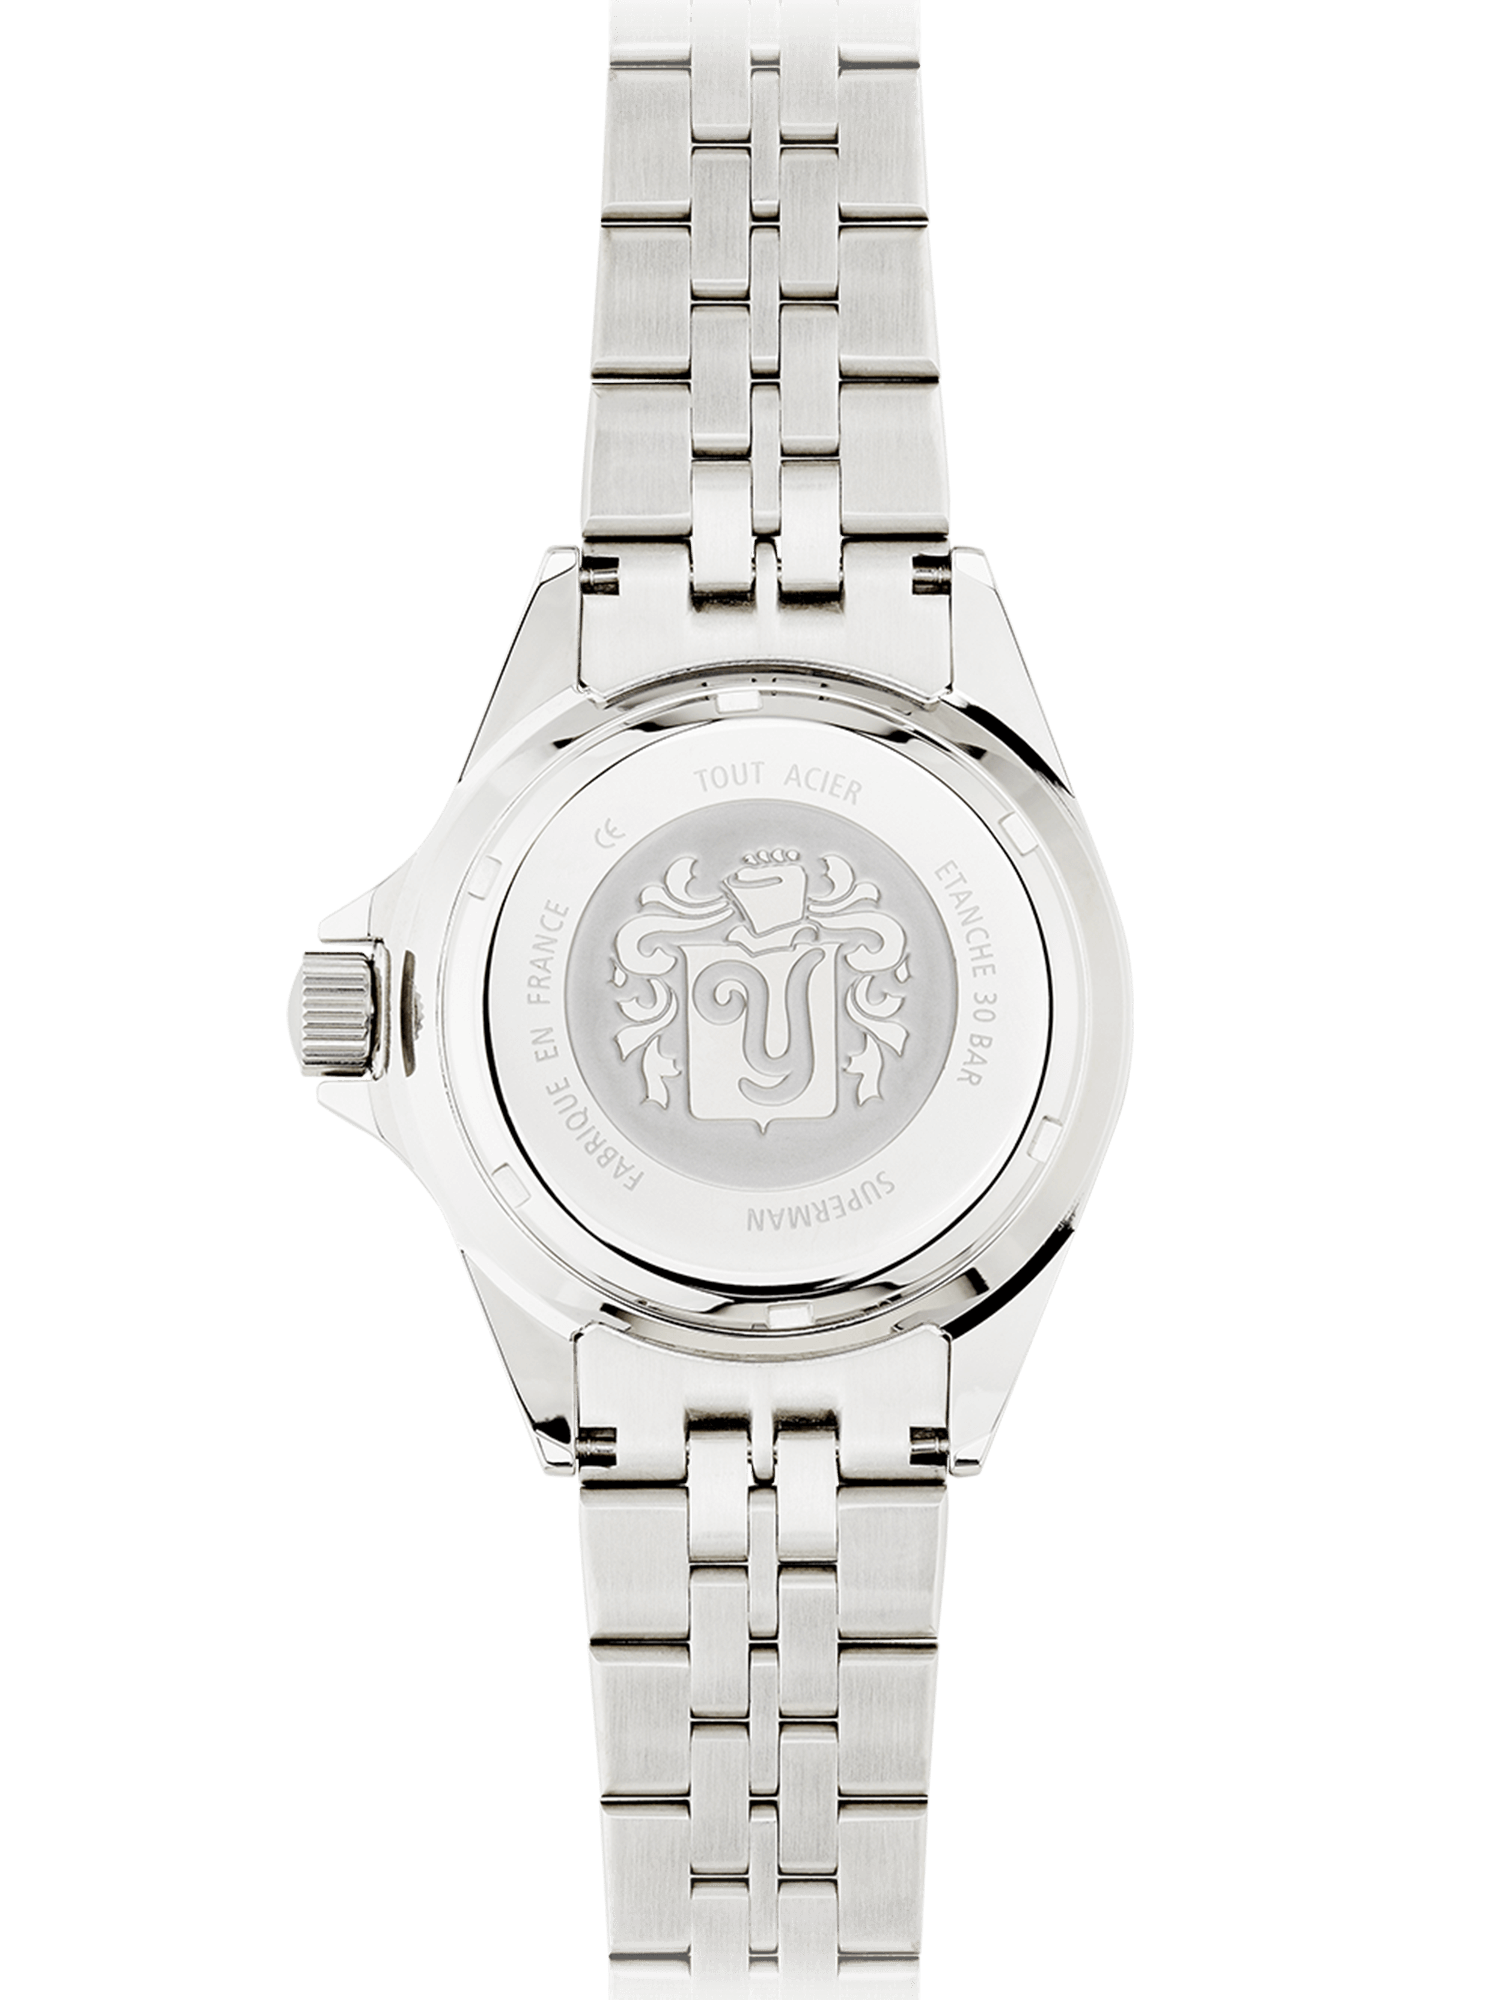 YEMA Superman Heritage watch, 316L steel backcase, YEMA crest embossed.